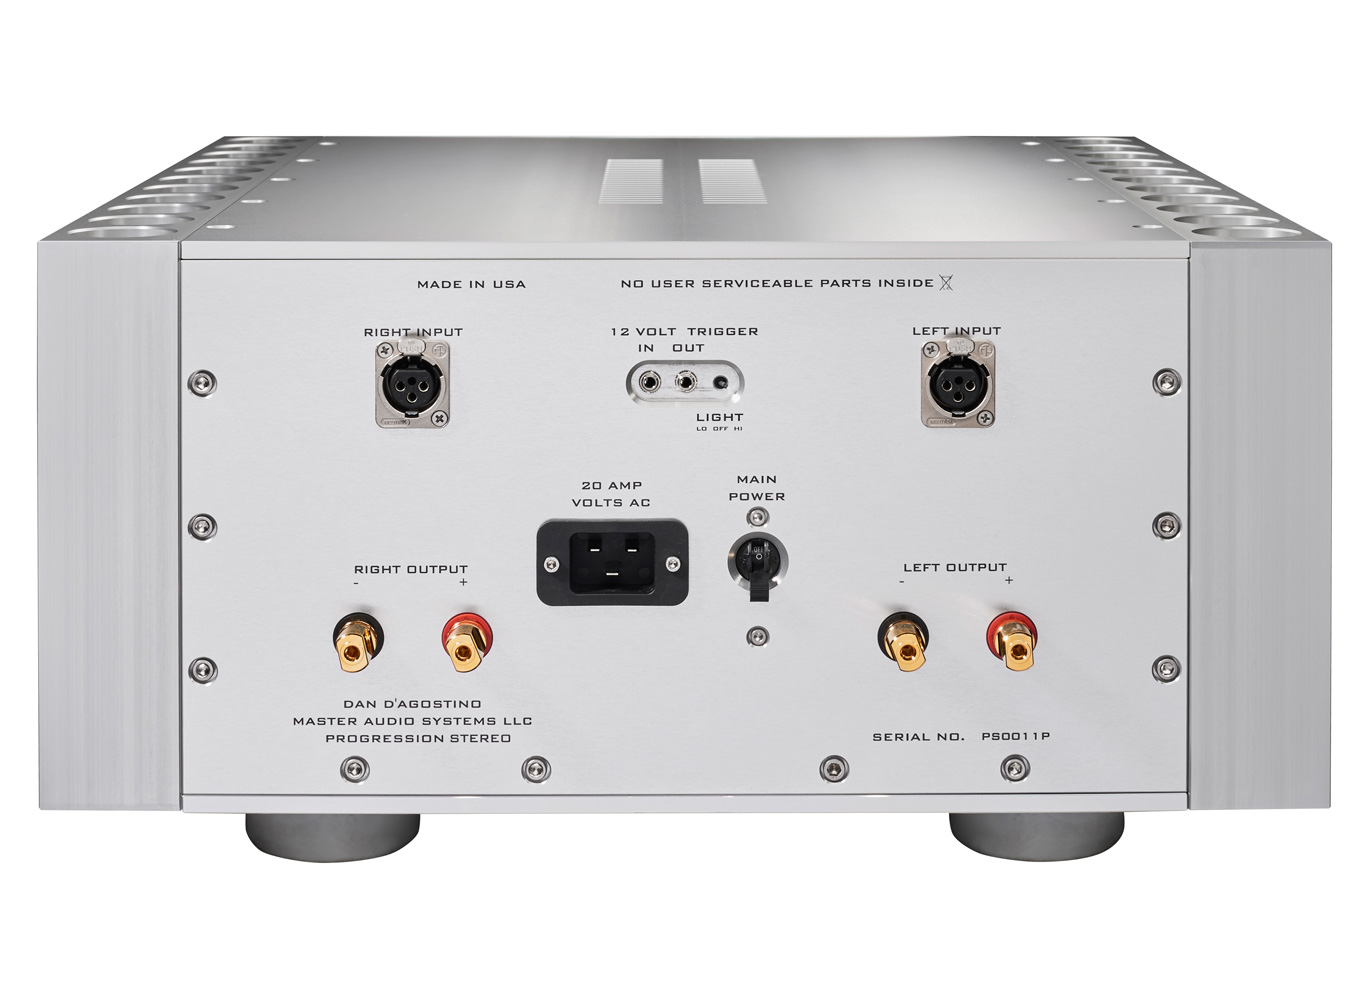 Progression Stereo Amplifier Products Dan Dagostino Master Audio Amplifiers Every Employs A Voltage Rail Actually Two Positive One And Its Companion Negative Partner Rails Support The Delivery Of Power To